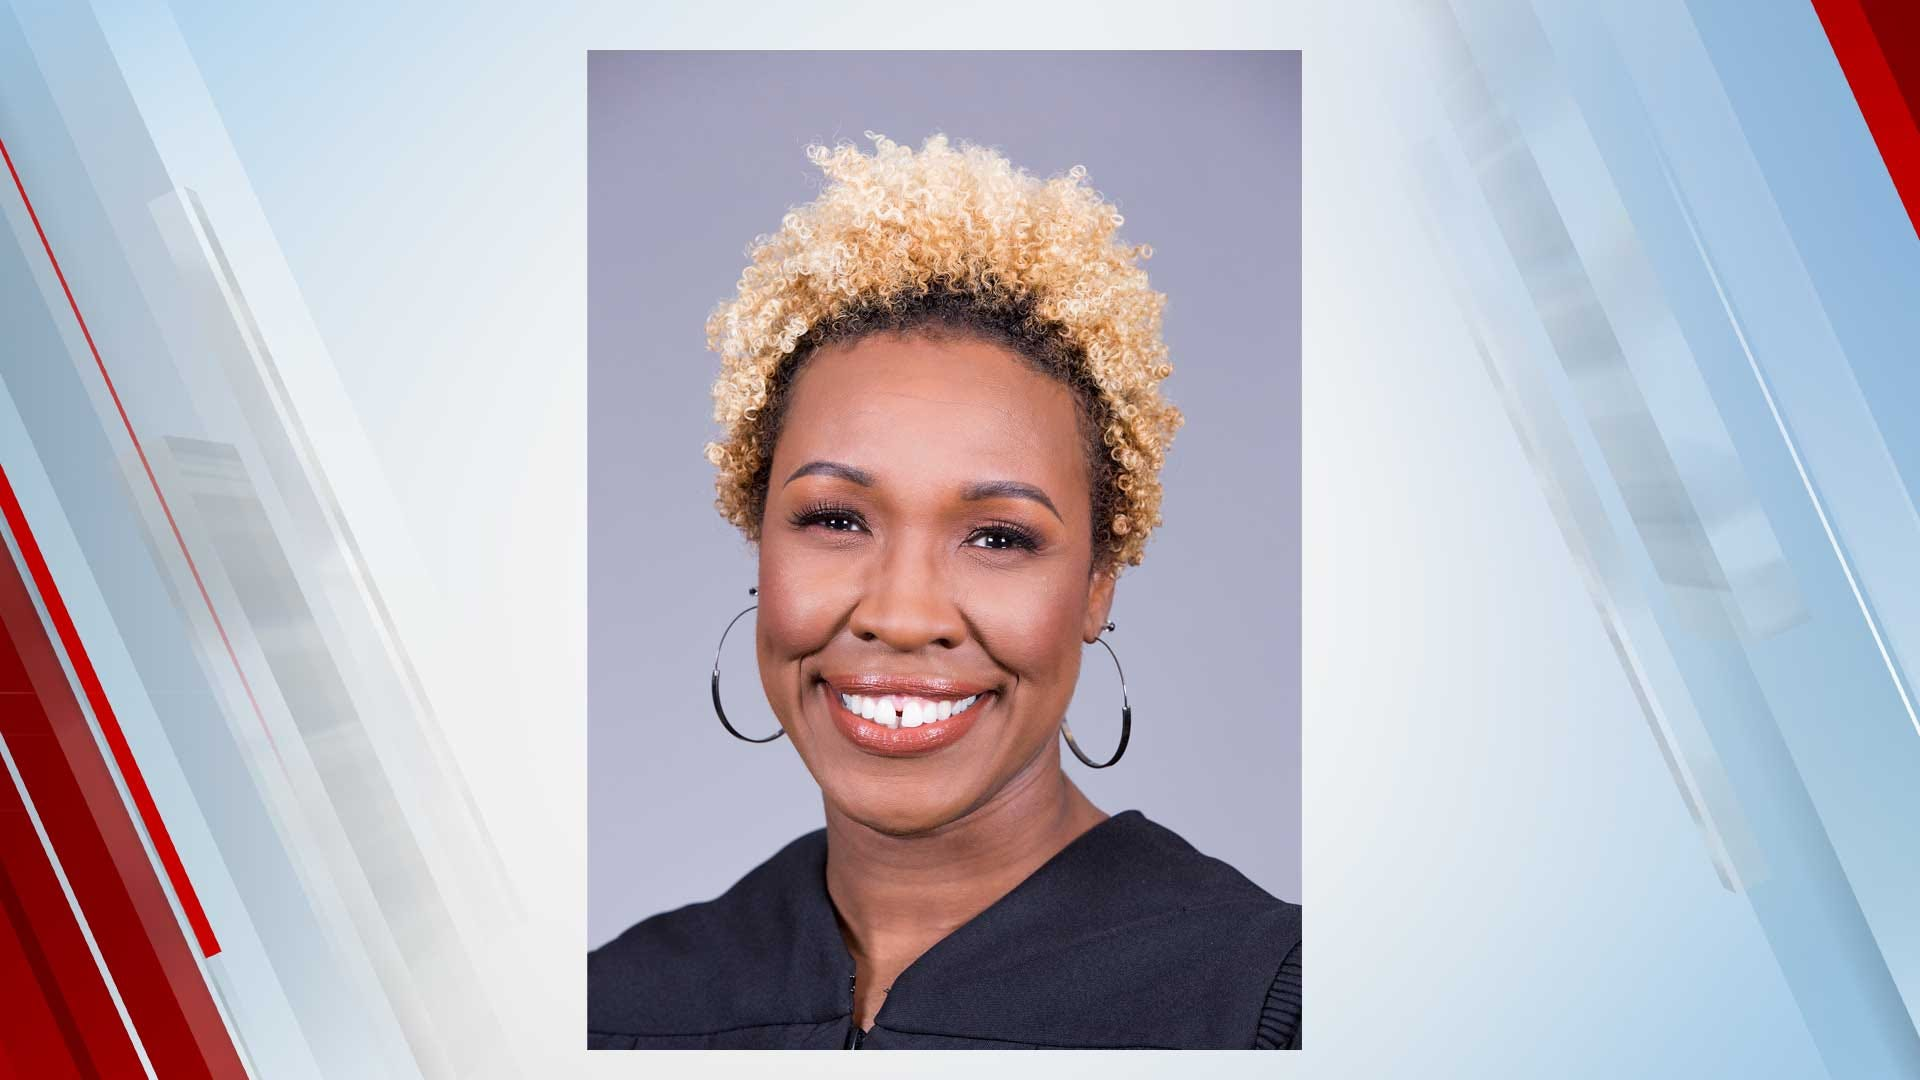 Oklahoma Co. District Judge Charged With Failure To File State Income Tax Return